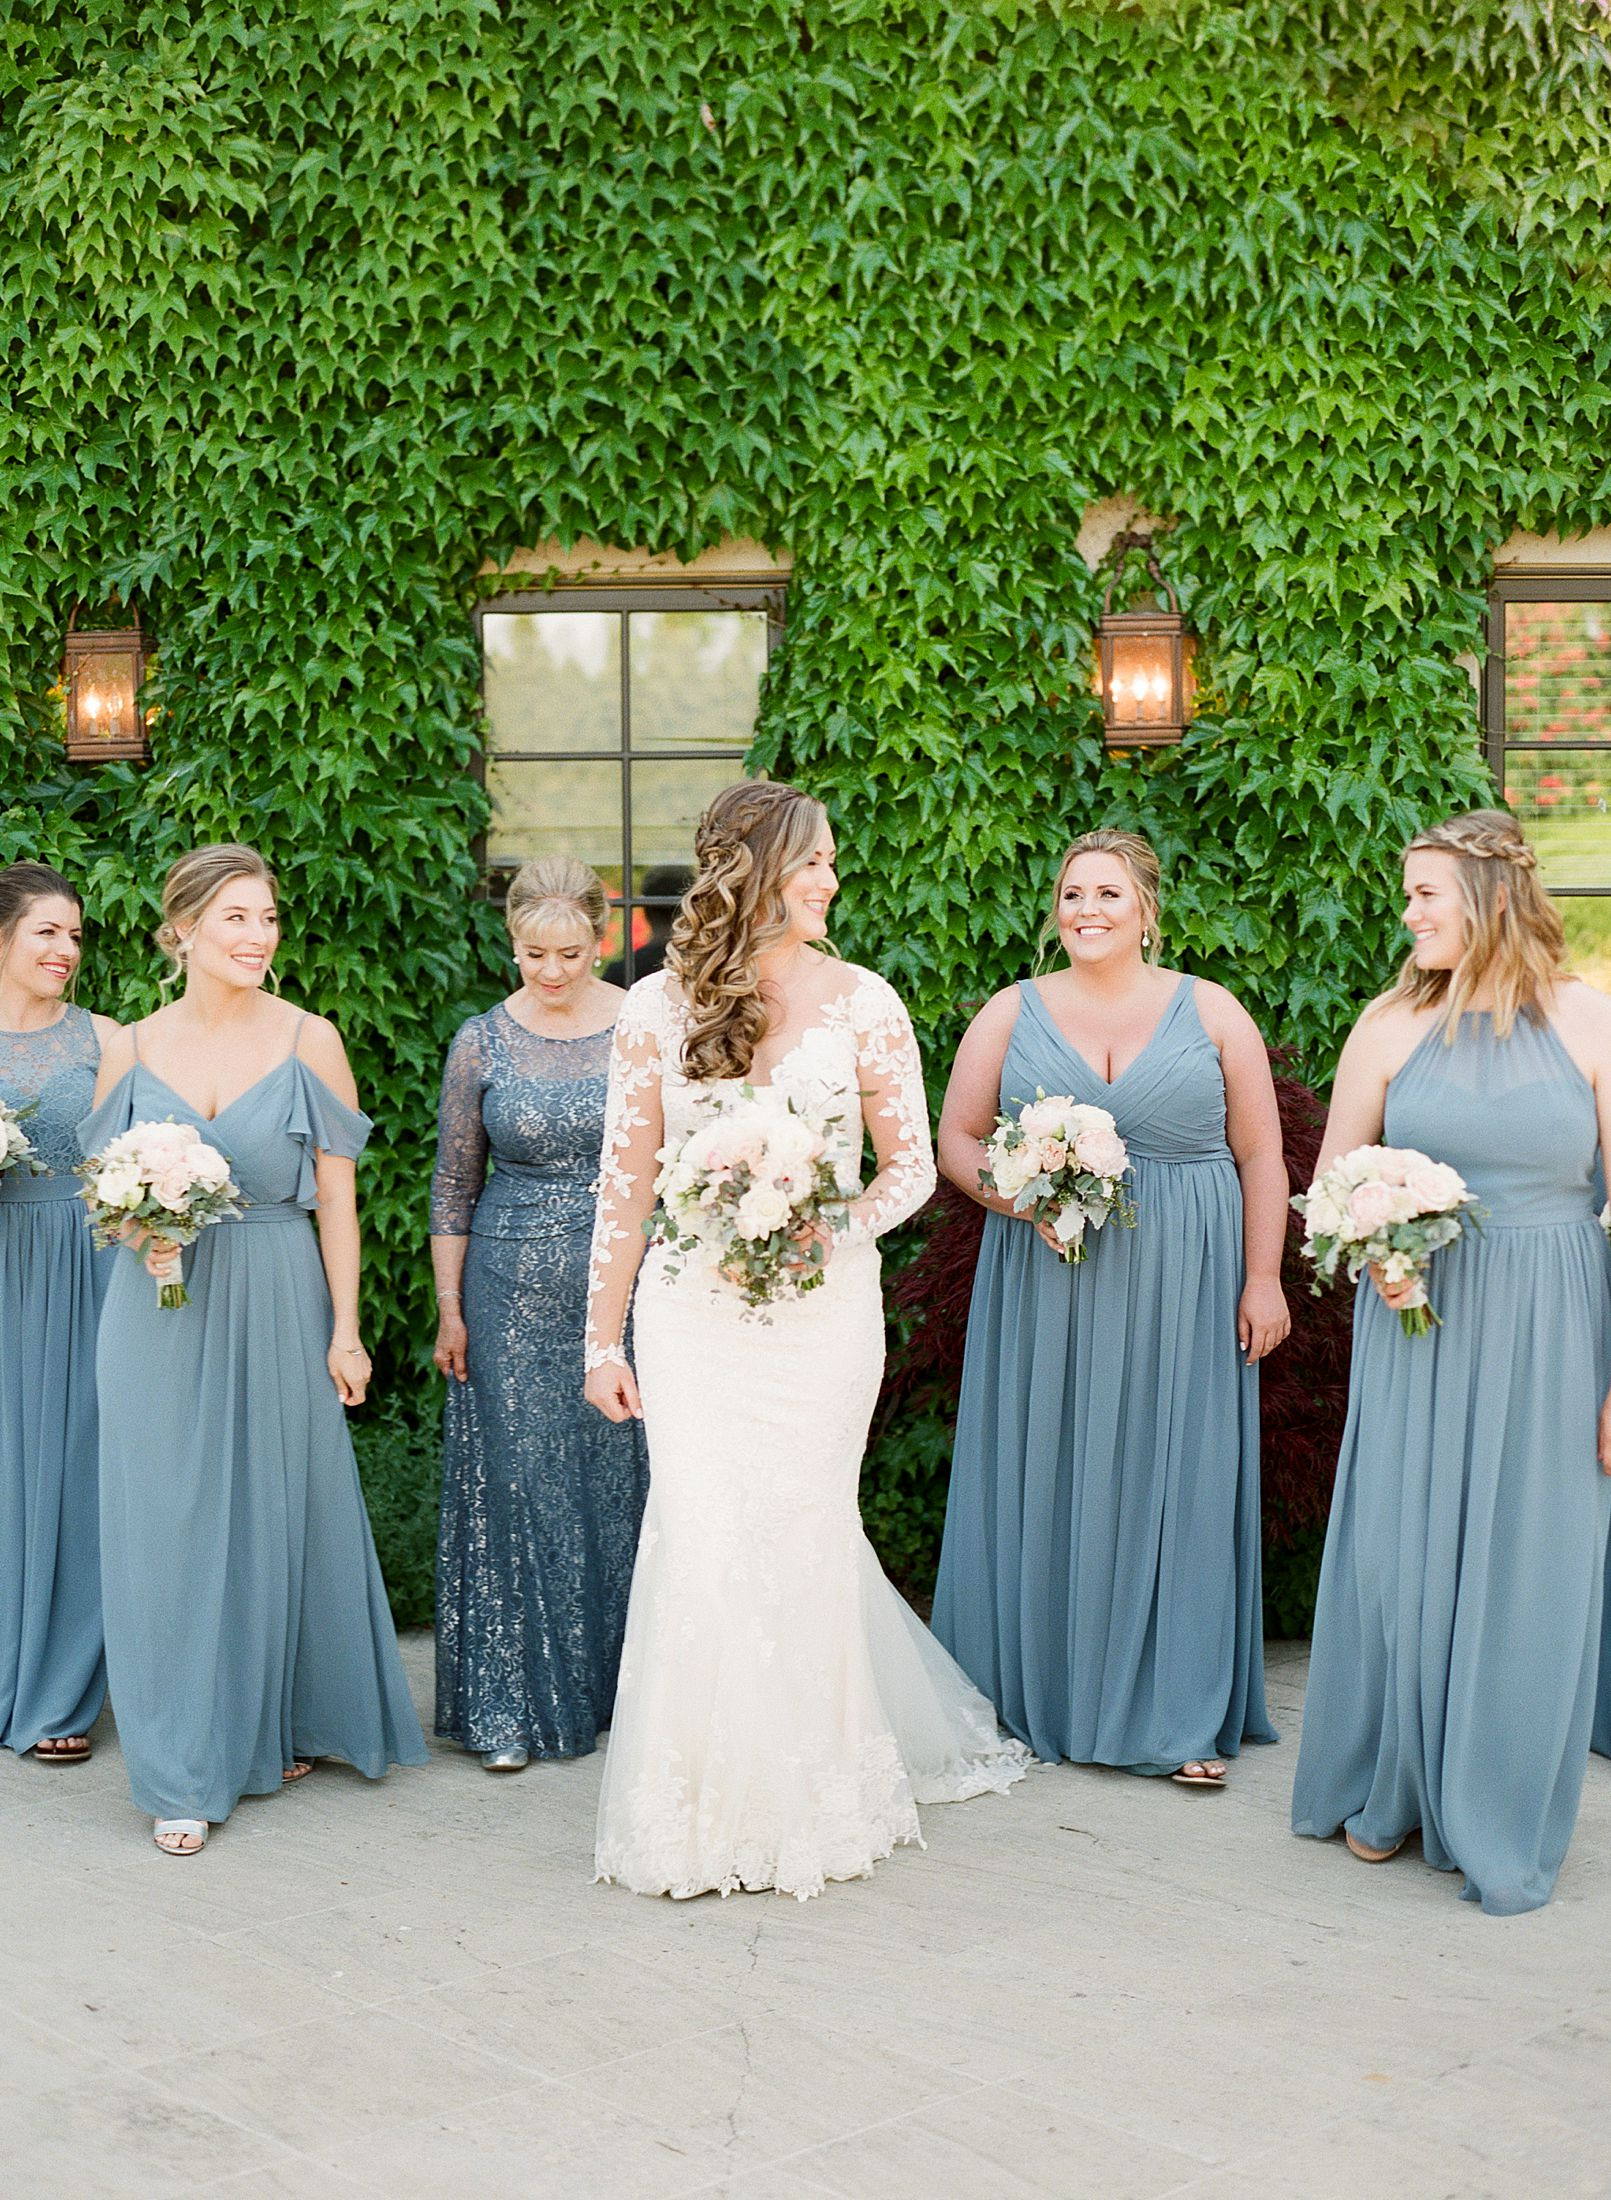 Clos LaChance Winery Wedding - Ashley Baumgartner - Kat & Kurt - Morgan Hill Wedding - Winery Wedding - Bay Area Photographer - Sacramento Wedding Photographer_0024.jpg